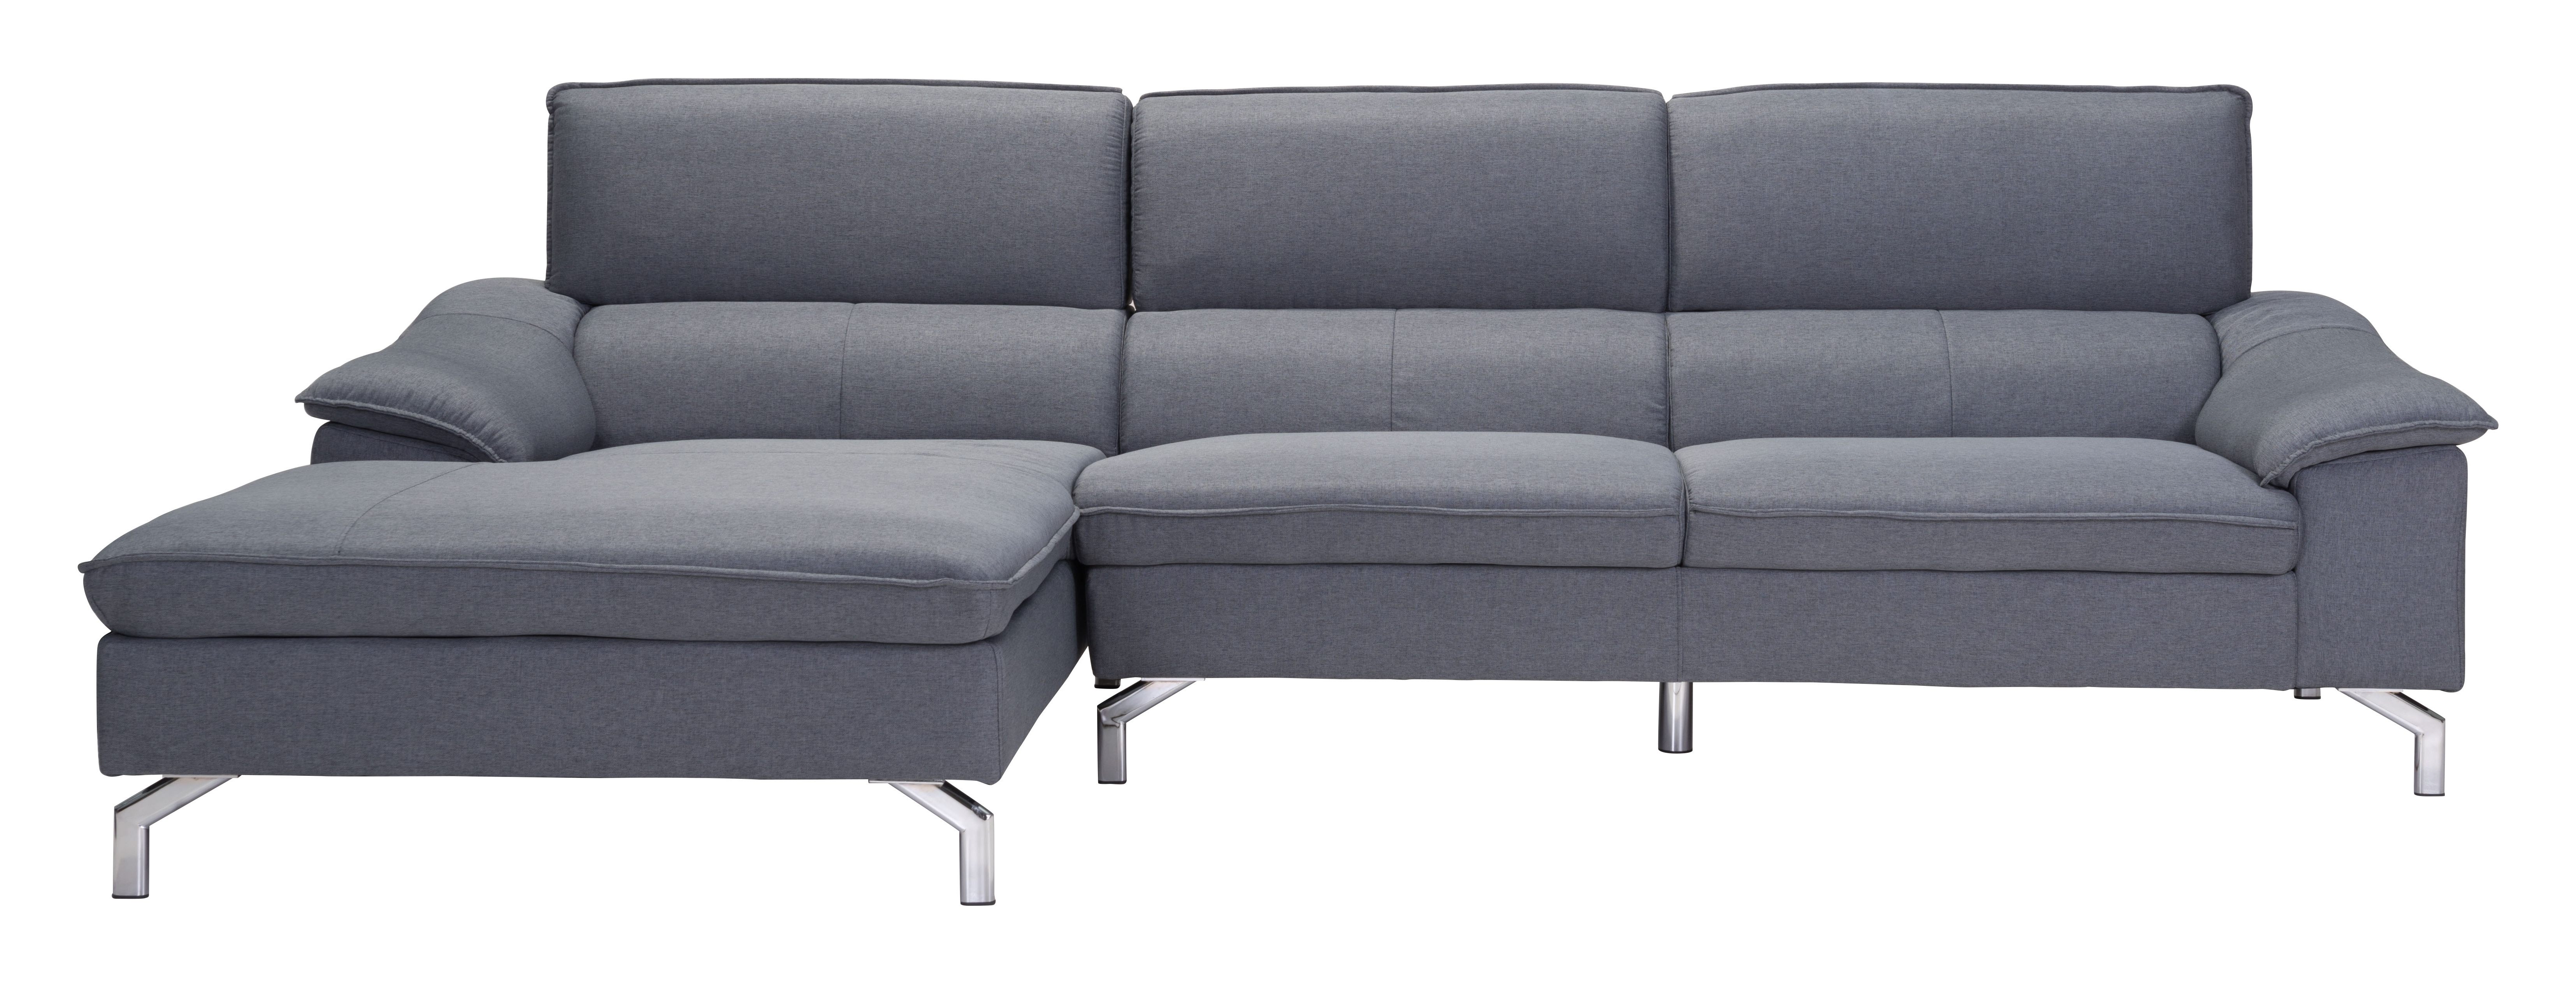 Sectional Sofas Art Van Within Well Known Sofas : Gray Sectional Macys Sectional Microfiber Sectional Sofa (View 15 of 20)